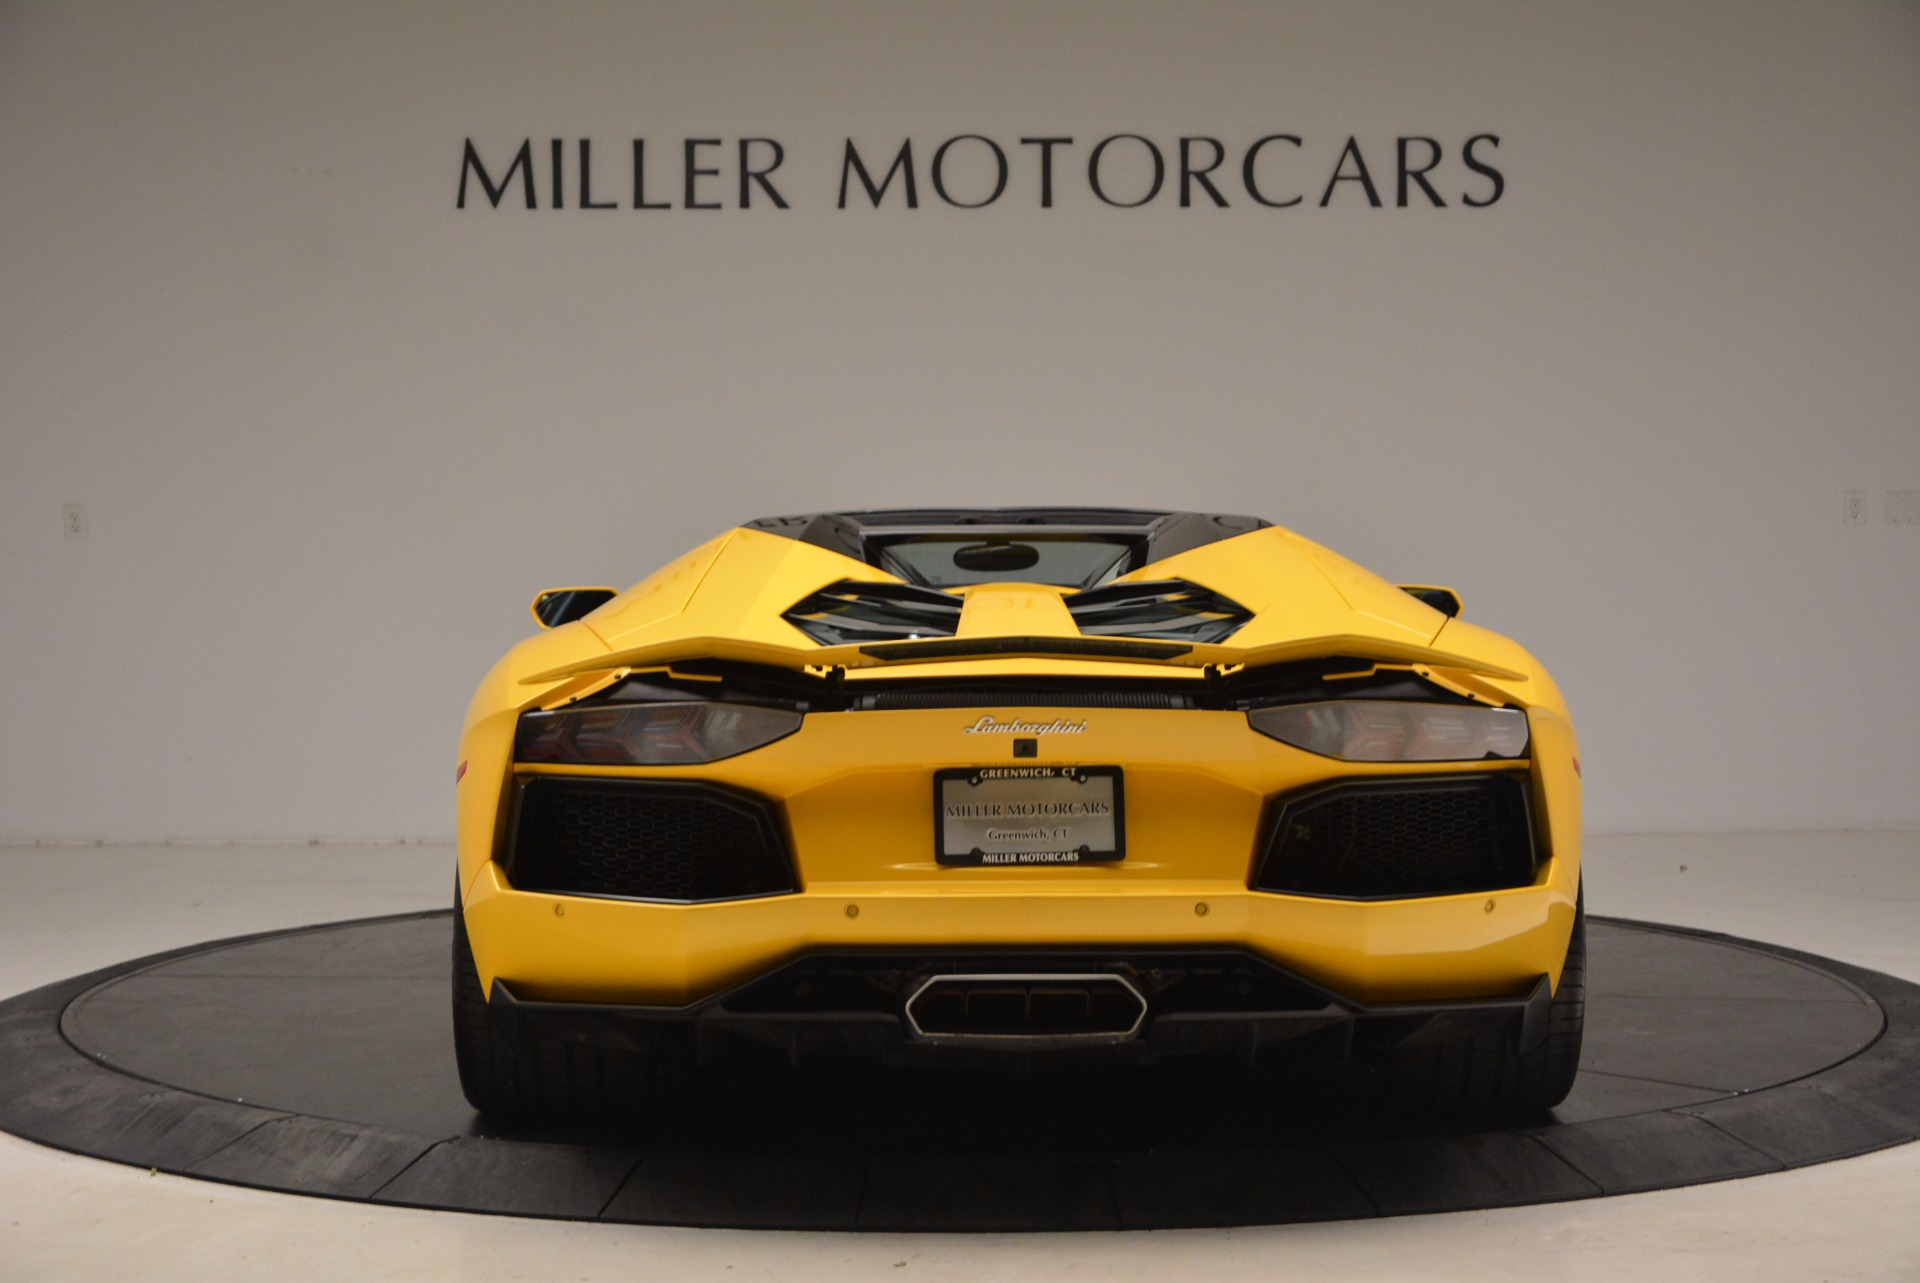 Used 2015 Lamborghini Aventador LP 700-4 Roadster For Sale In Westport, CT 1774_p6